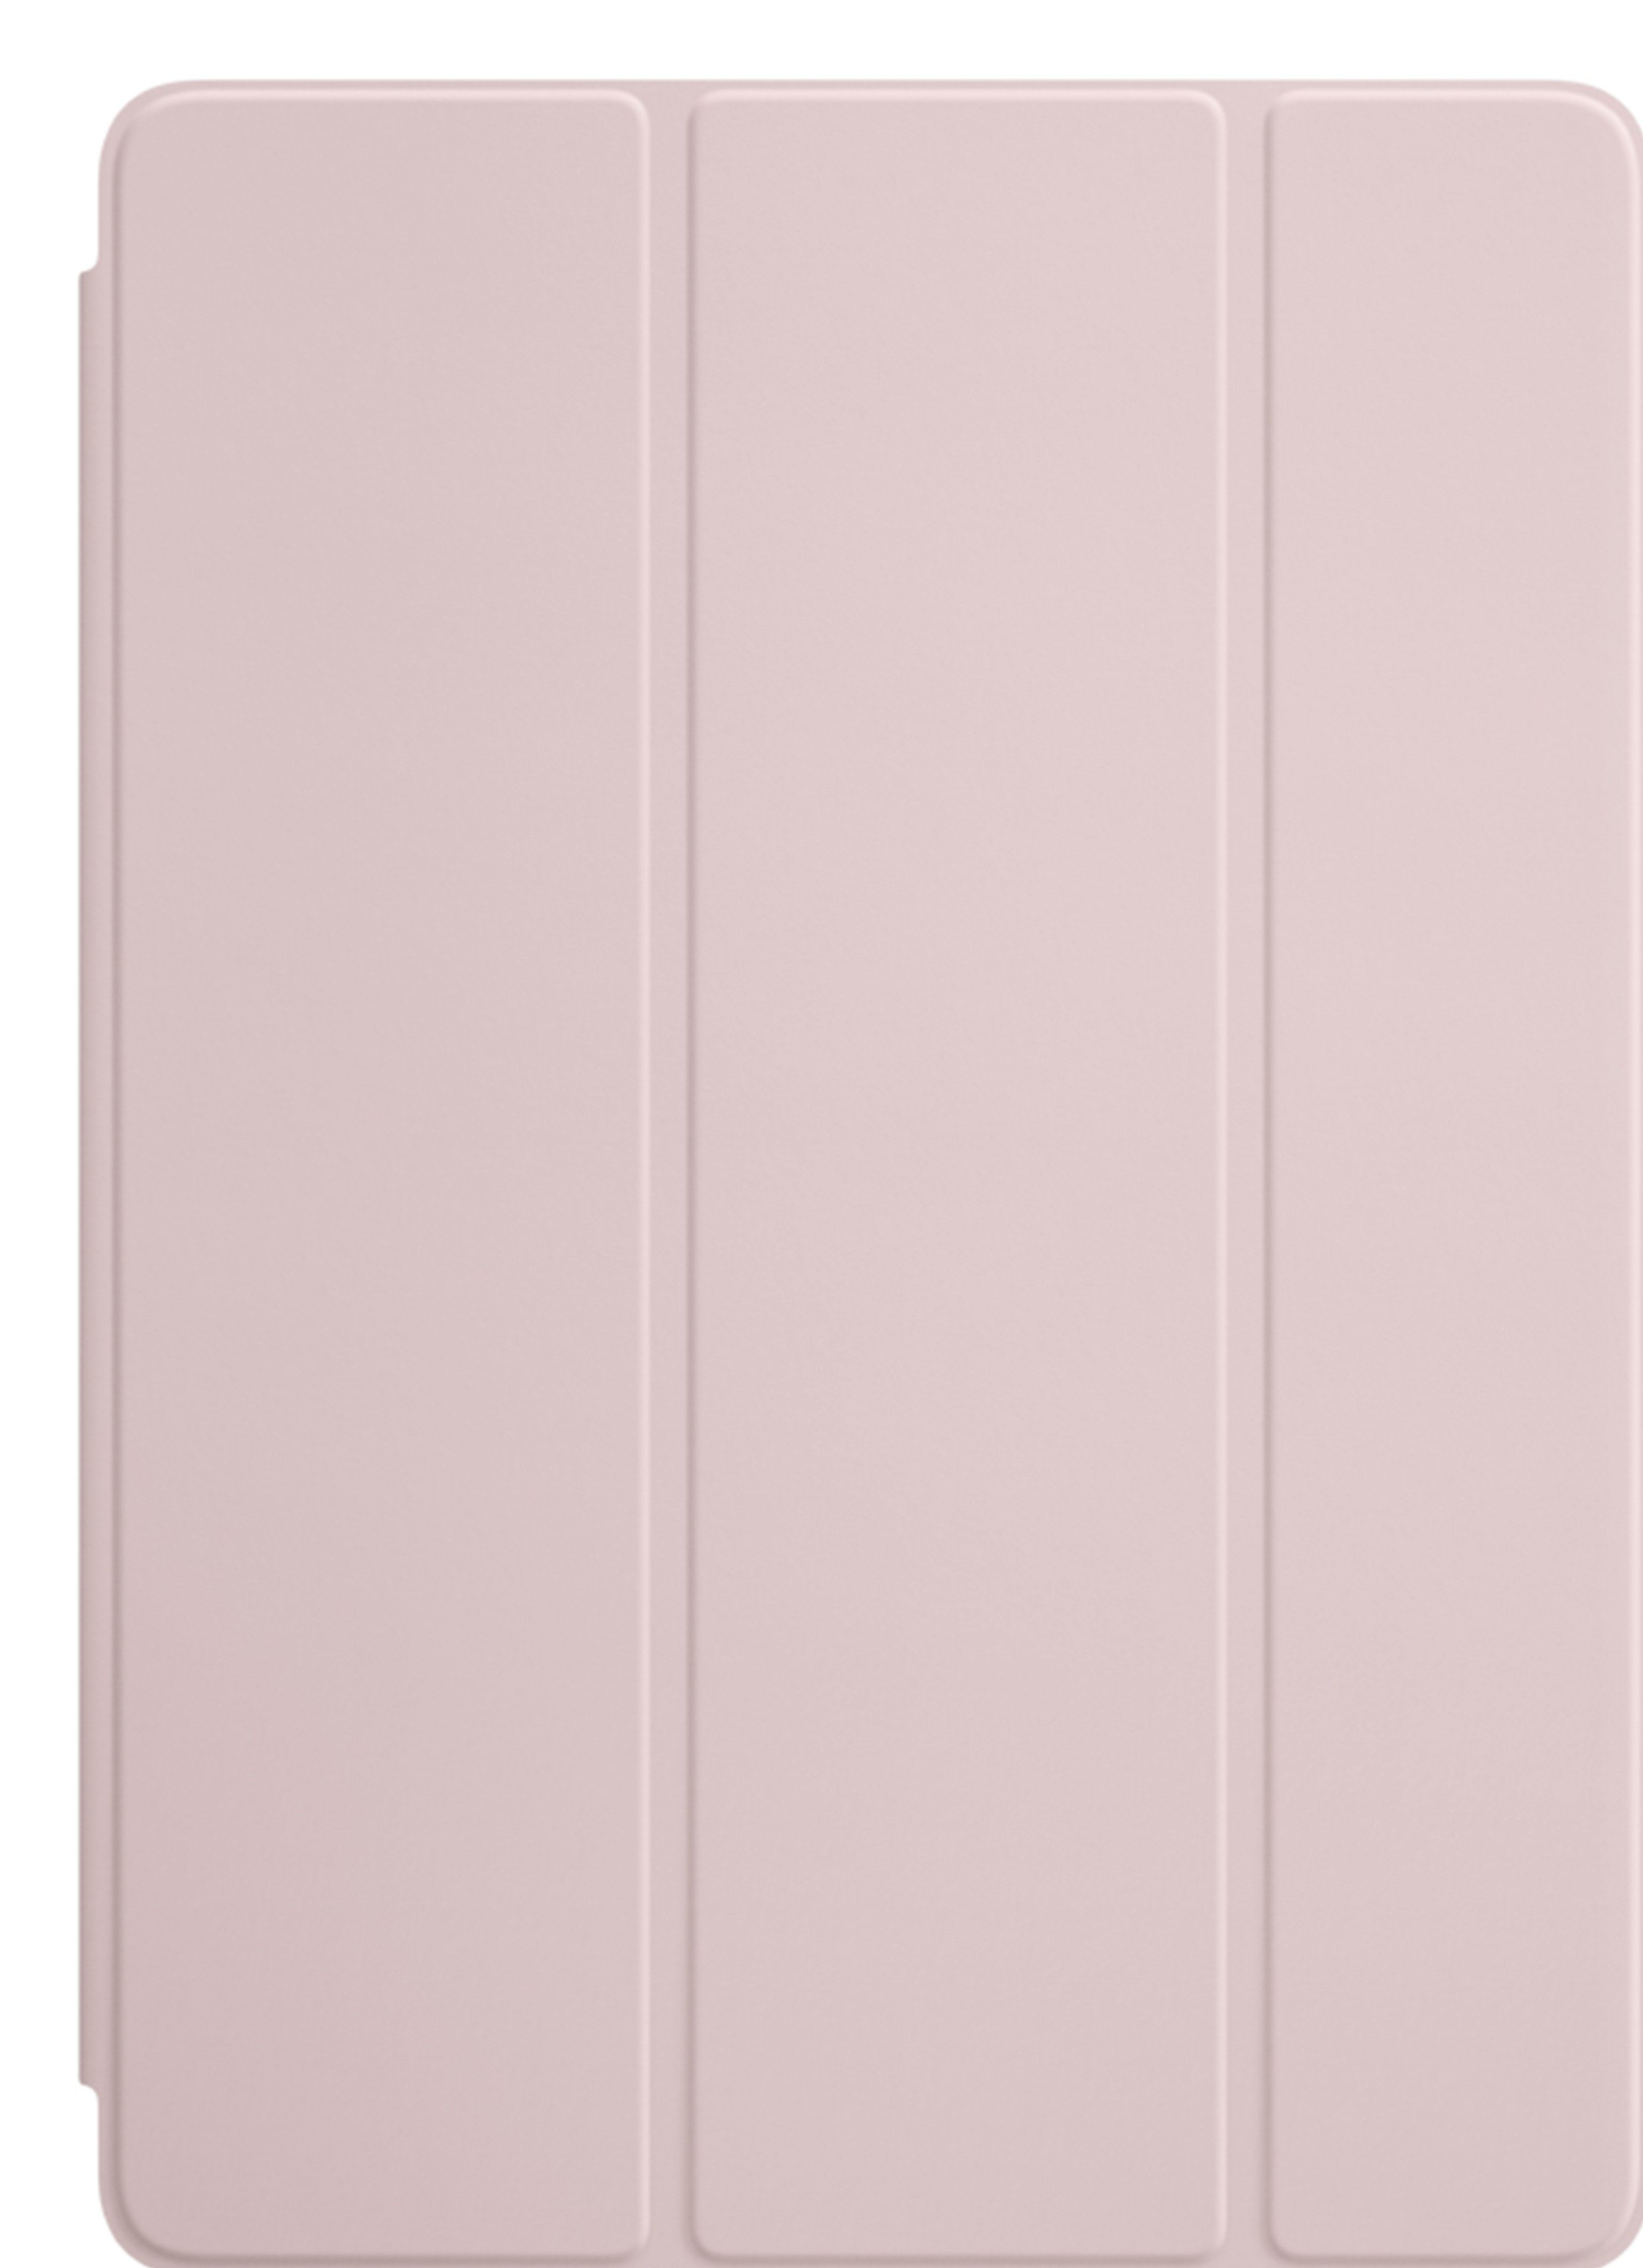 apple-105-inch-ipad-pro-smart-cover-pink